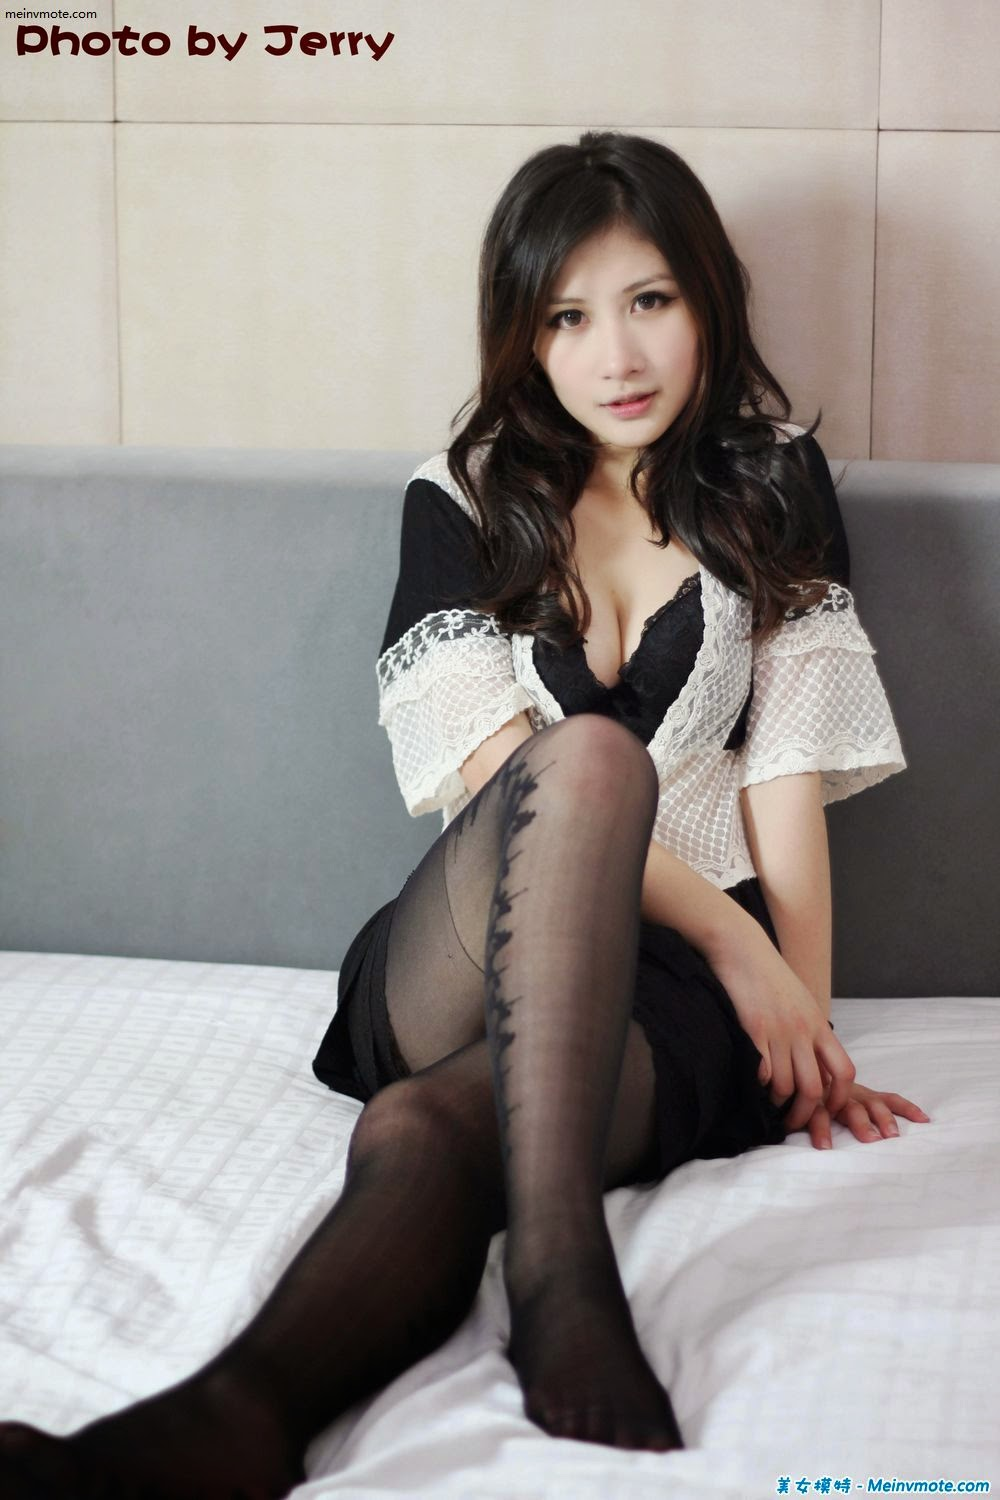 The hotel's small private shoot wife in bed